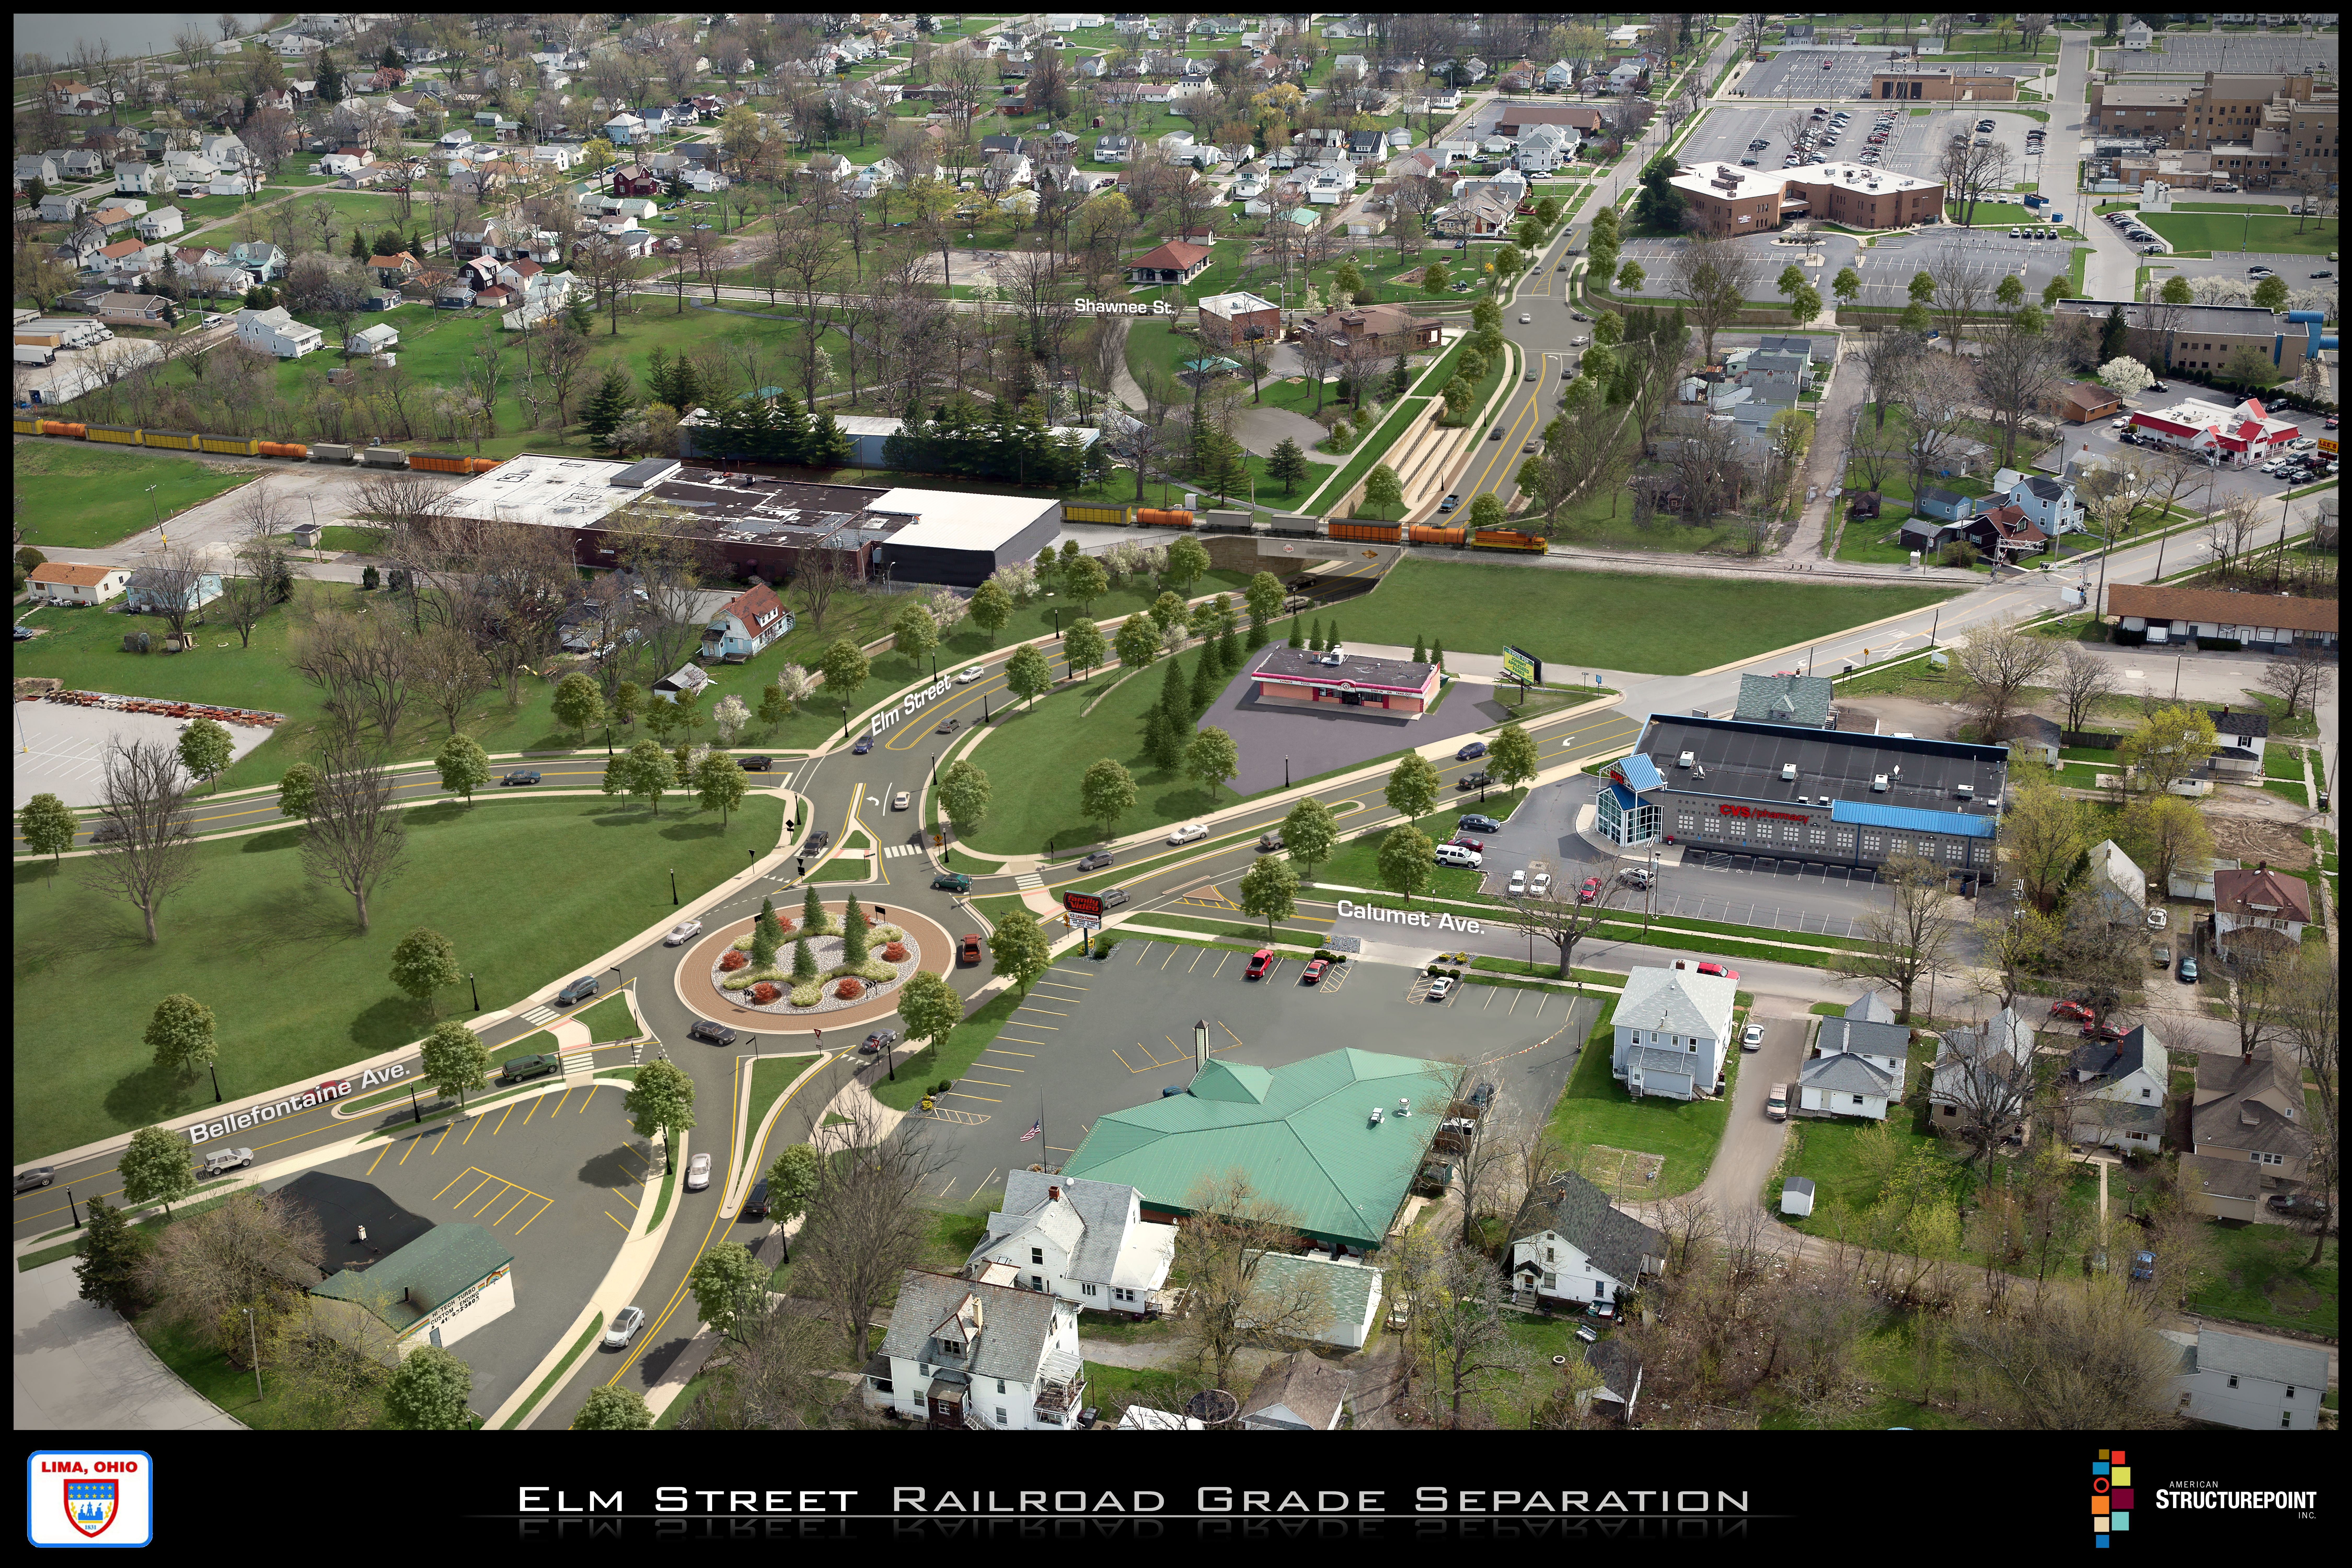 Concept of Elm Street Railroad Grade Separation